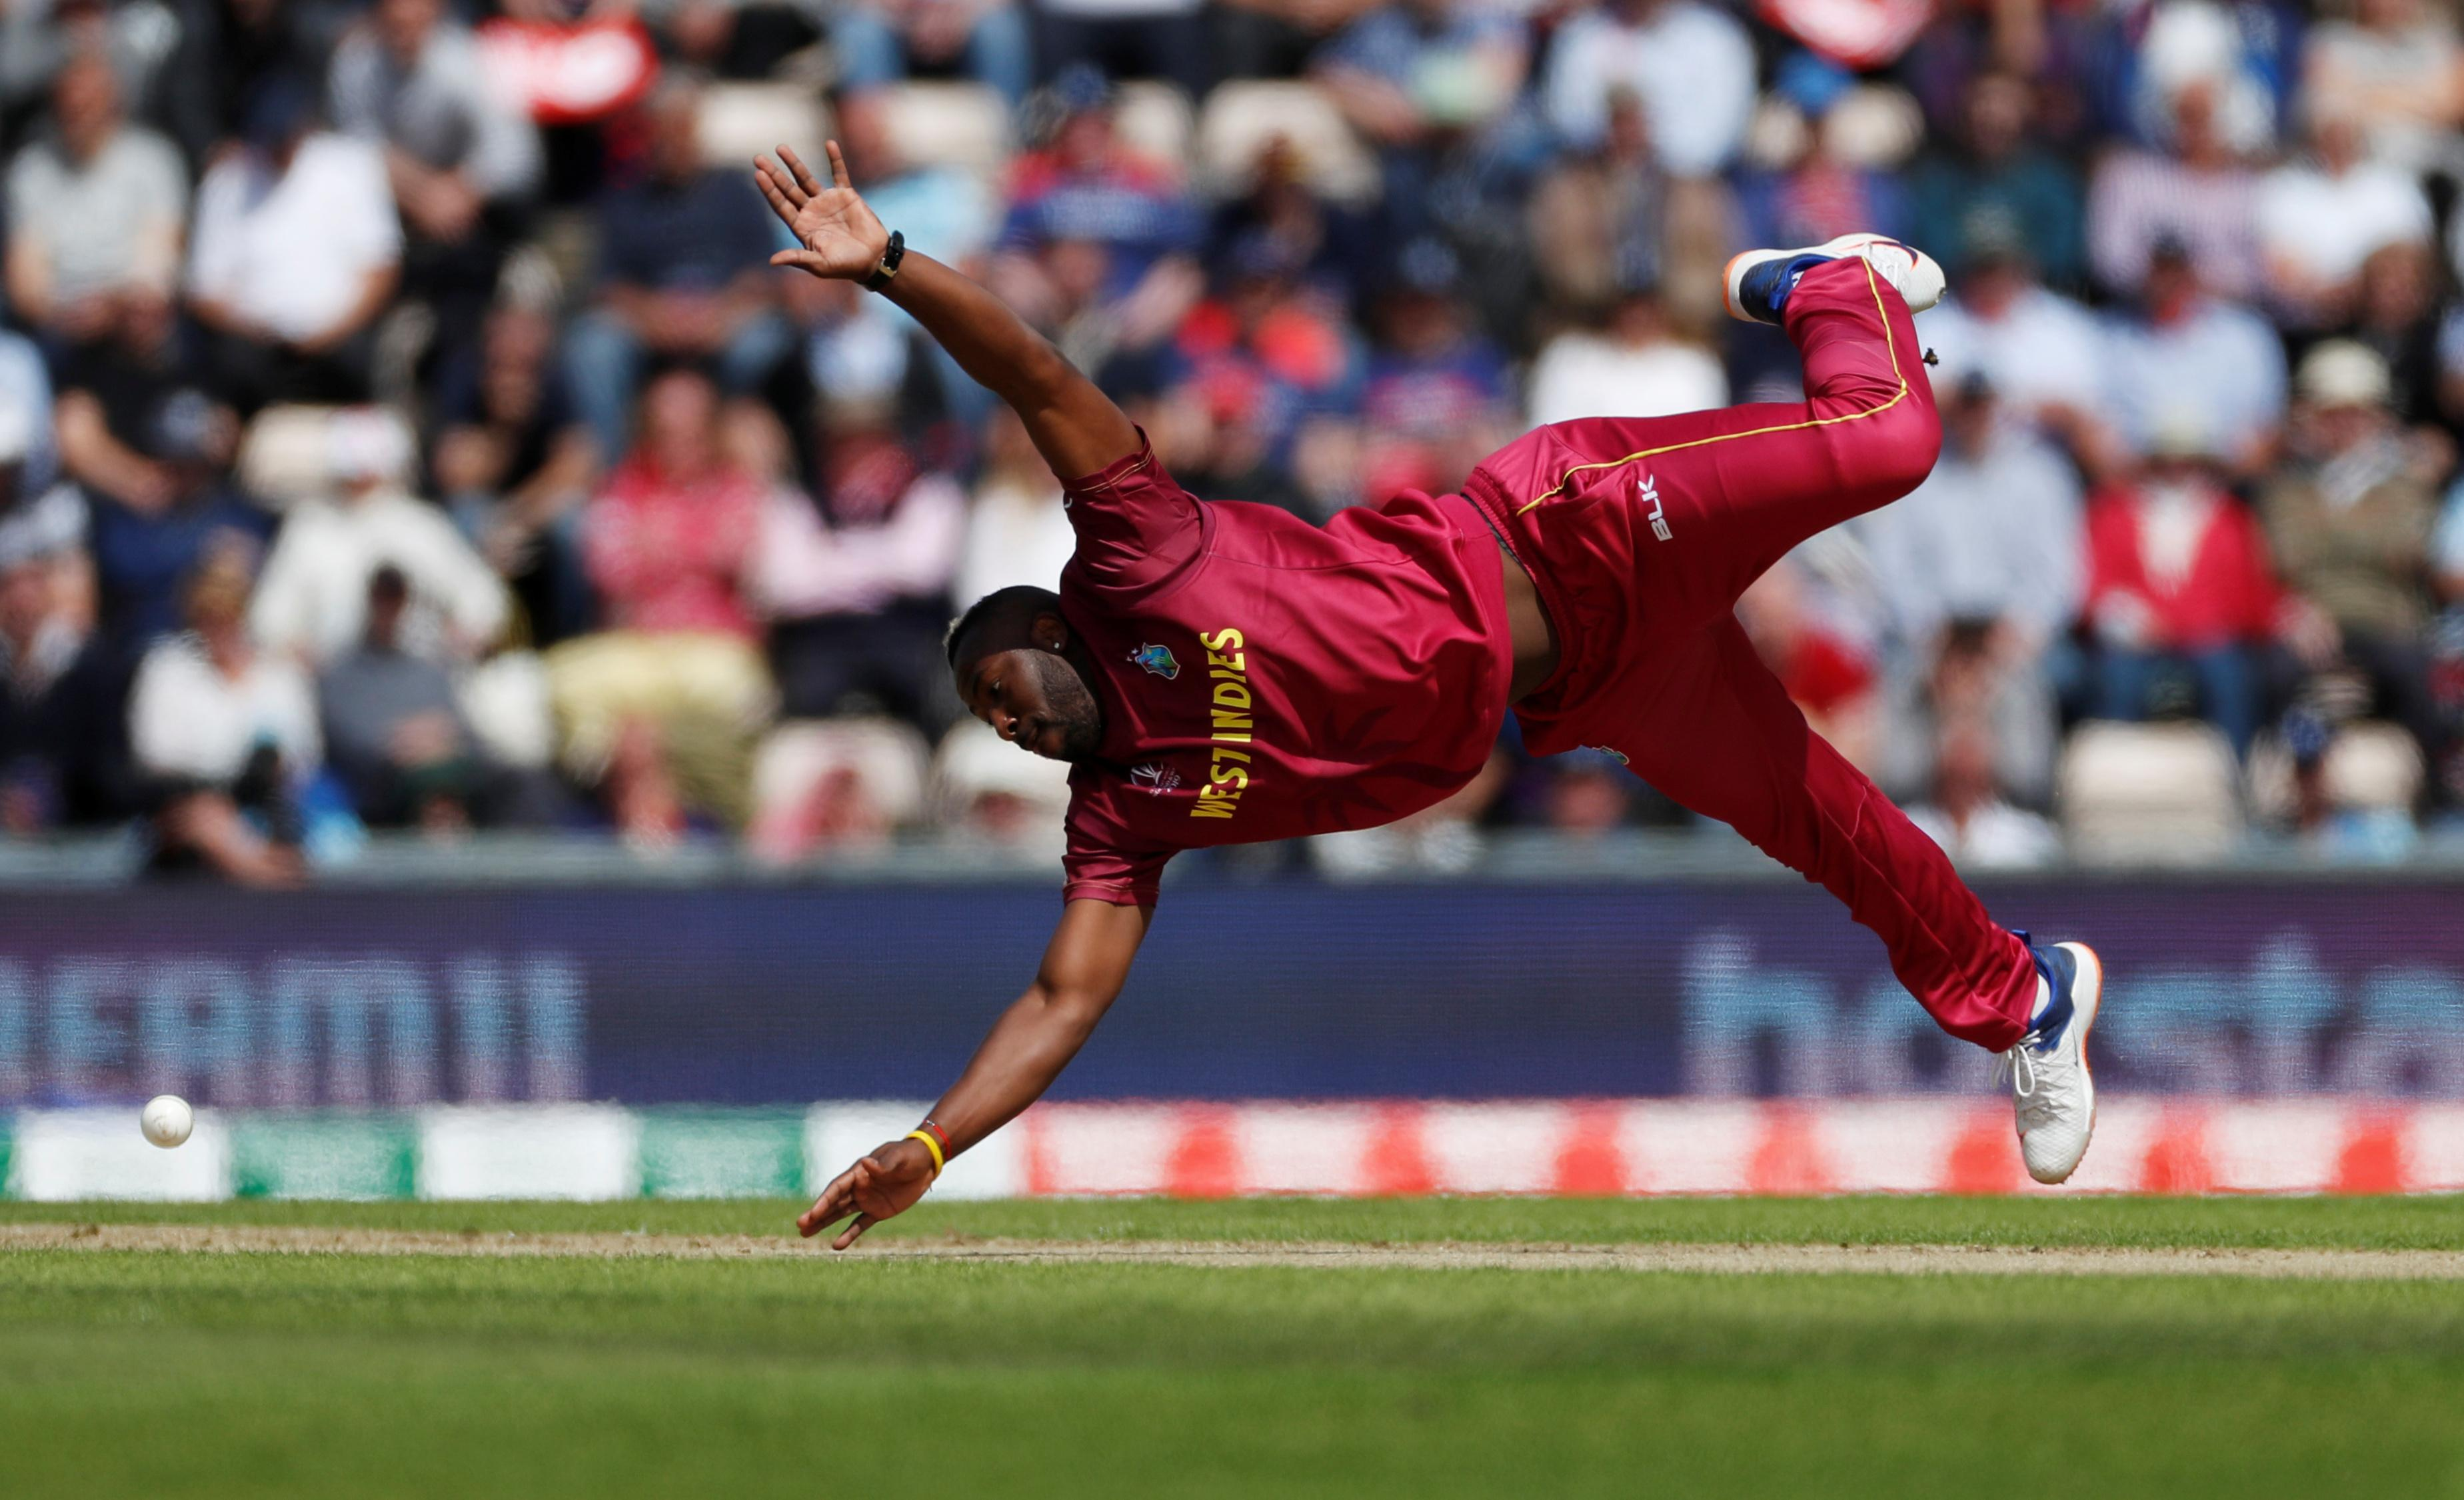 Windies' Russell cleared of serious injury after head blow